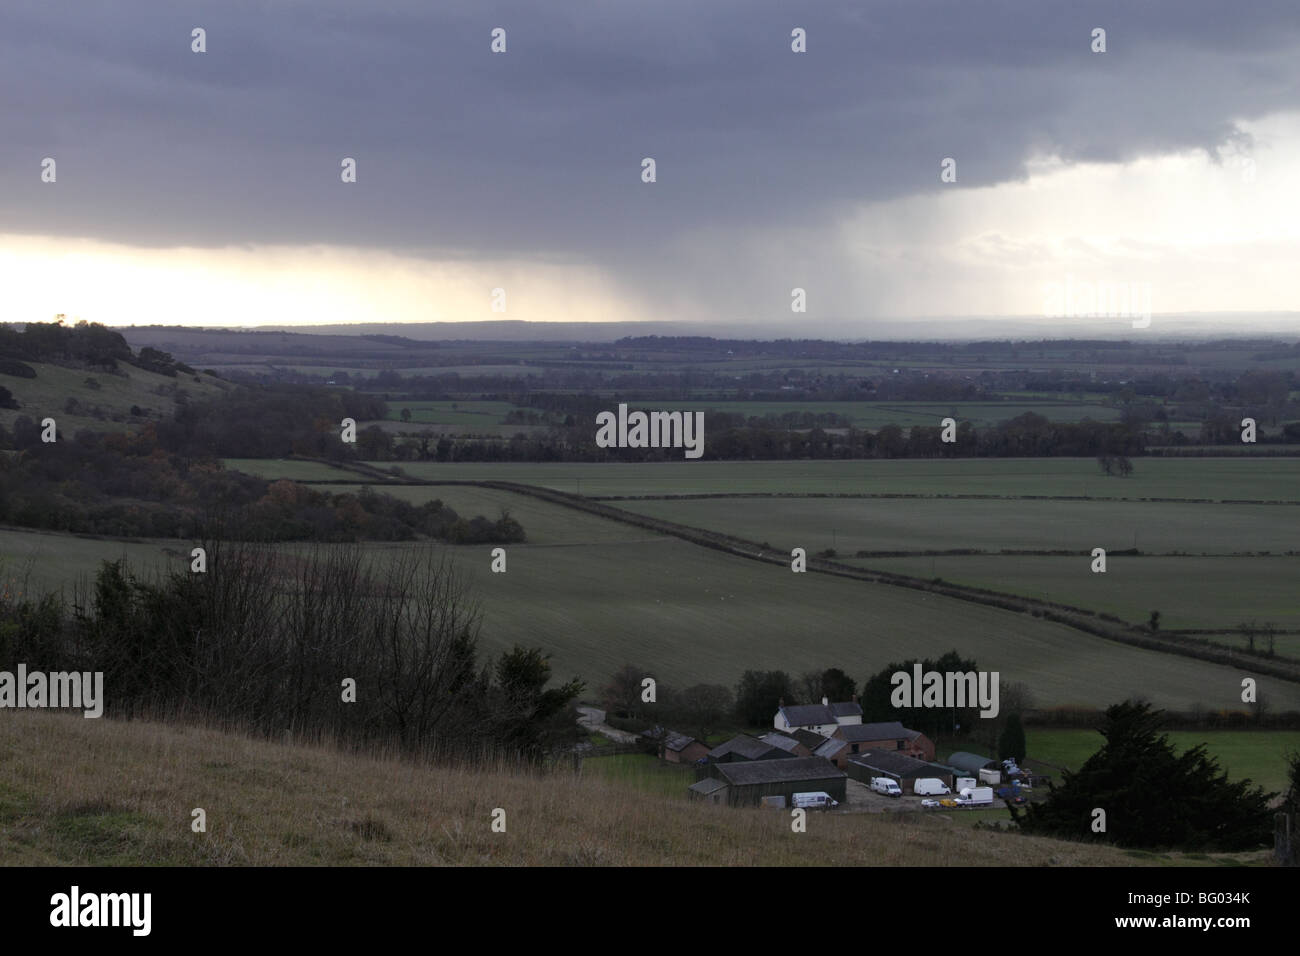 Rain cloud over the Chilterns Oxfordshire November 2009 - Stock Image